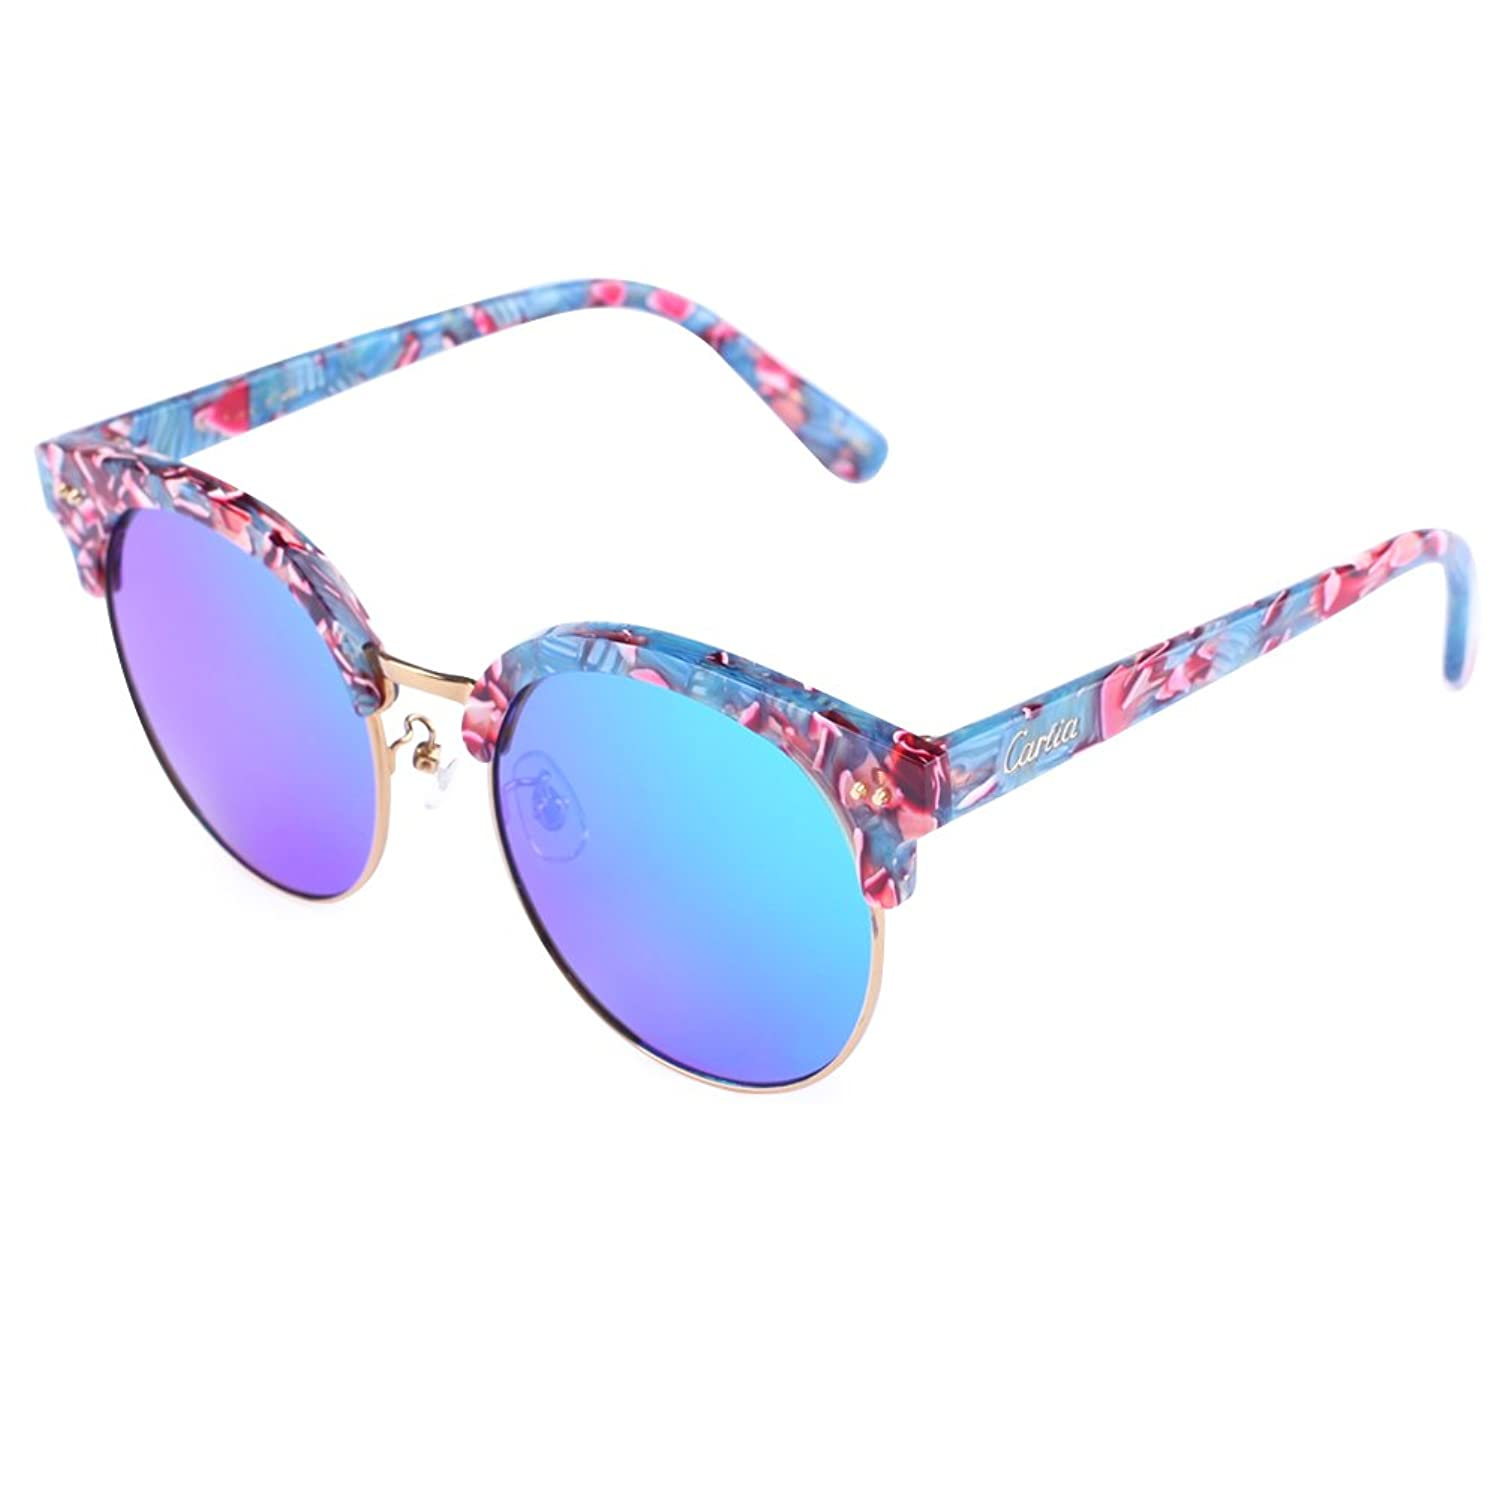 mirrored womens sunglasses wkli  cheap Carfia Round Womens Sunglasses Polarized Mirrored Sunglasses Plank  Frame with Box, 100% UV400